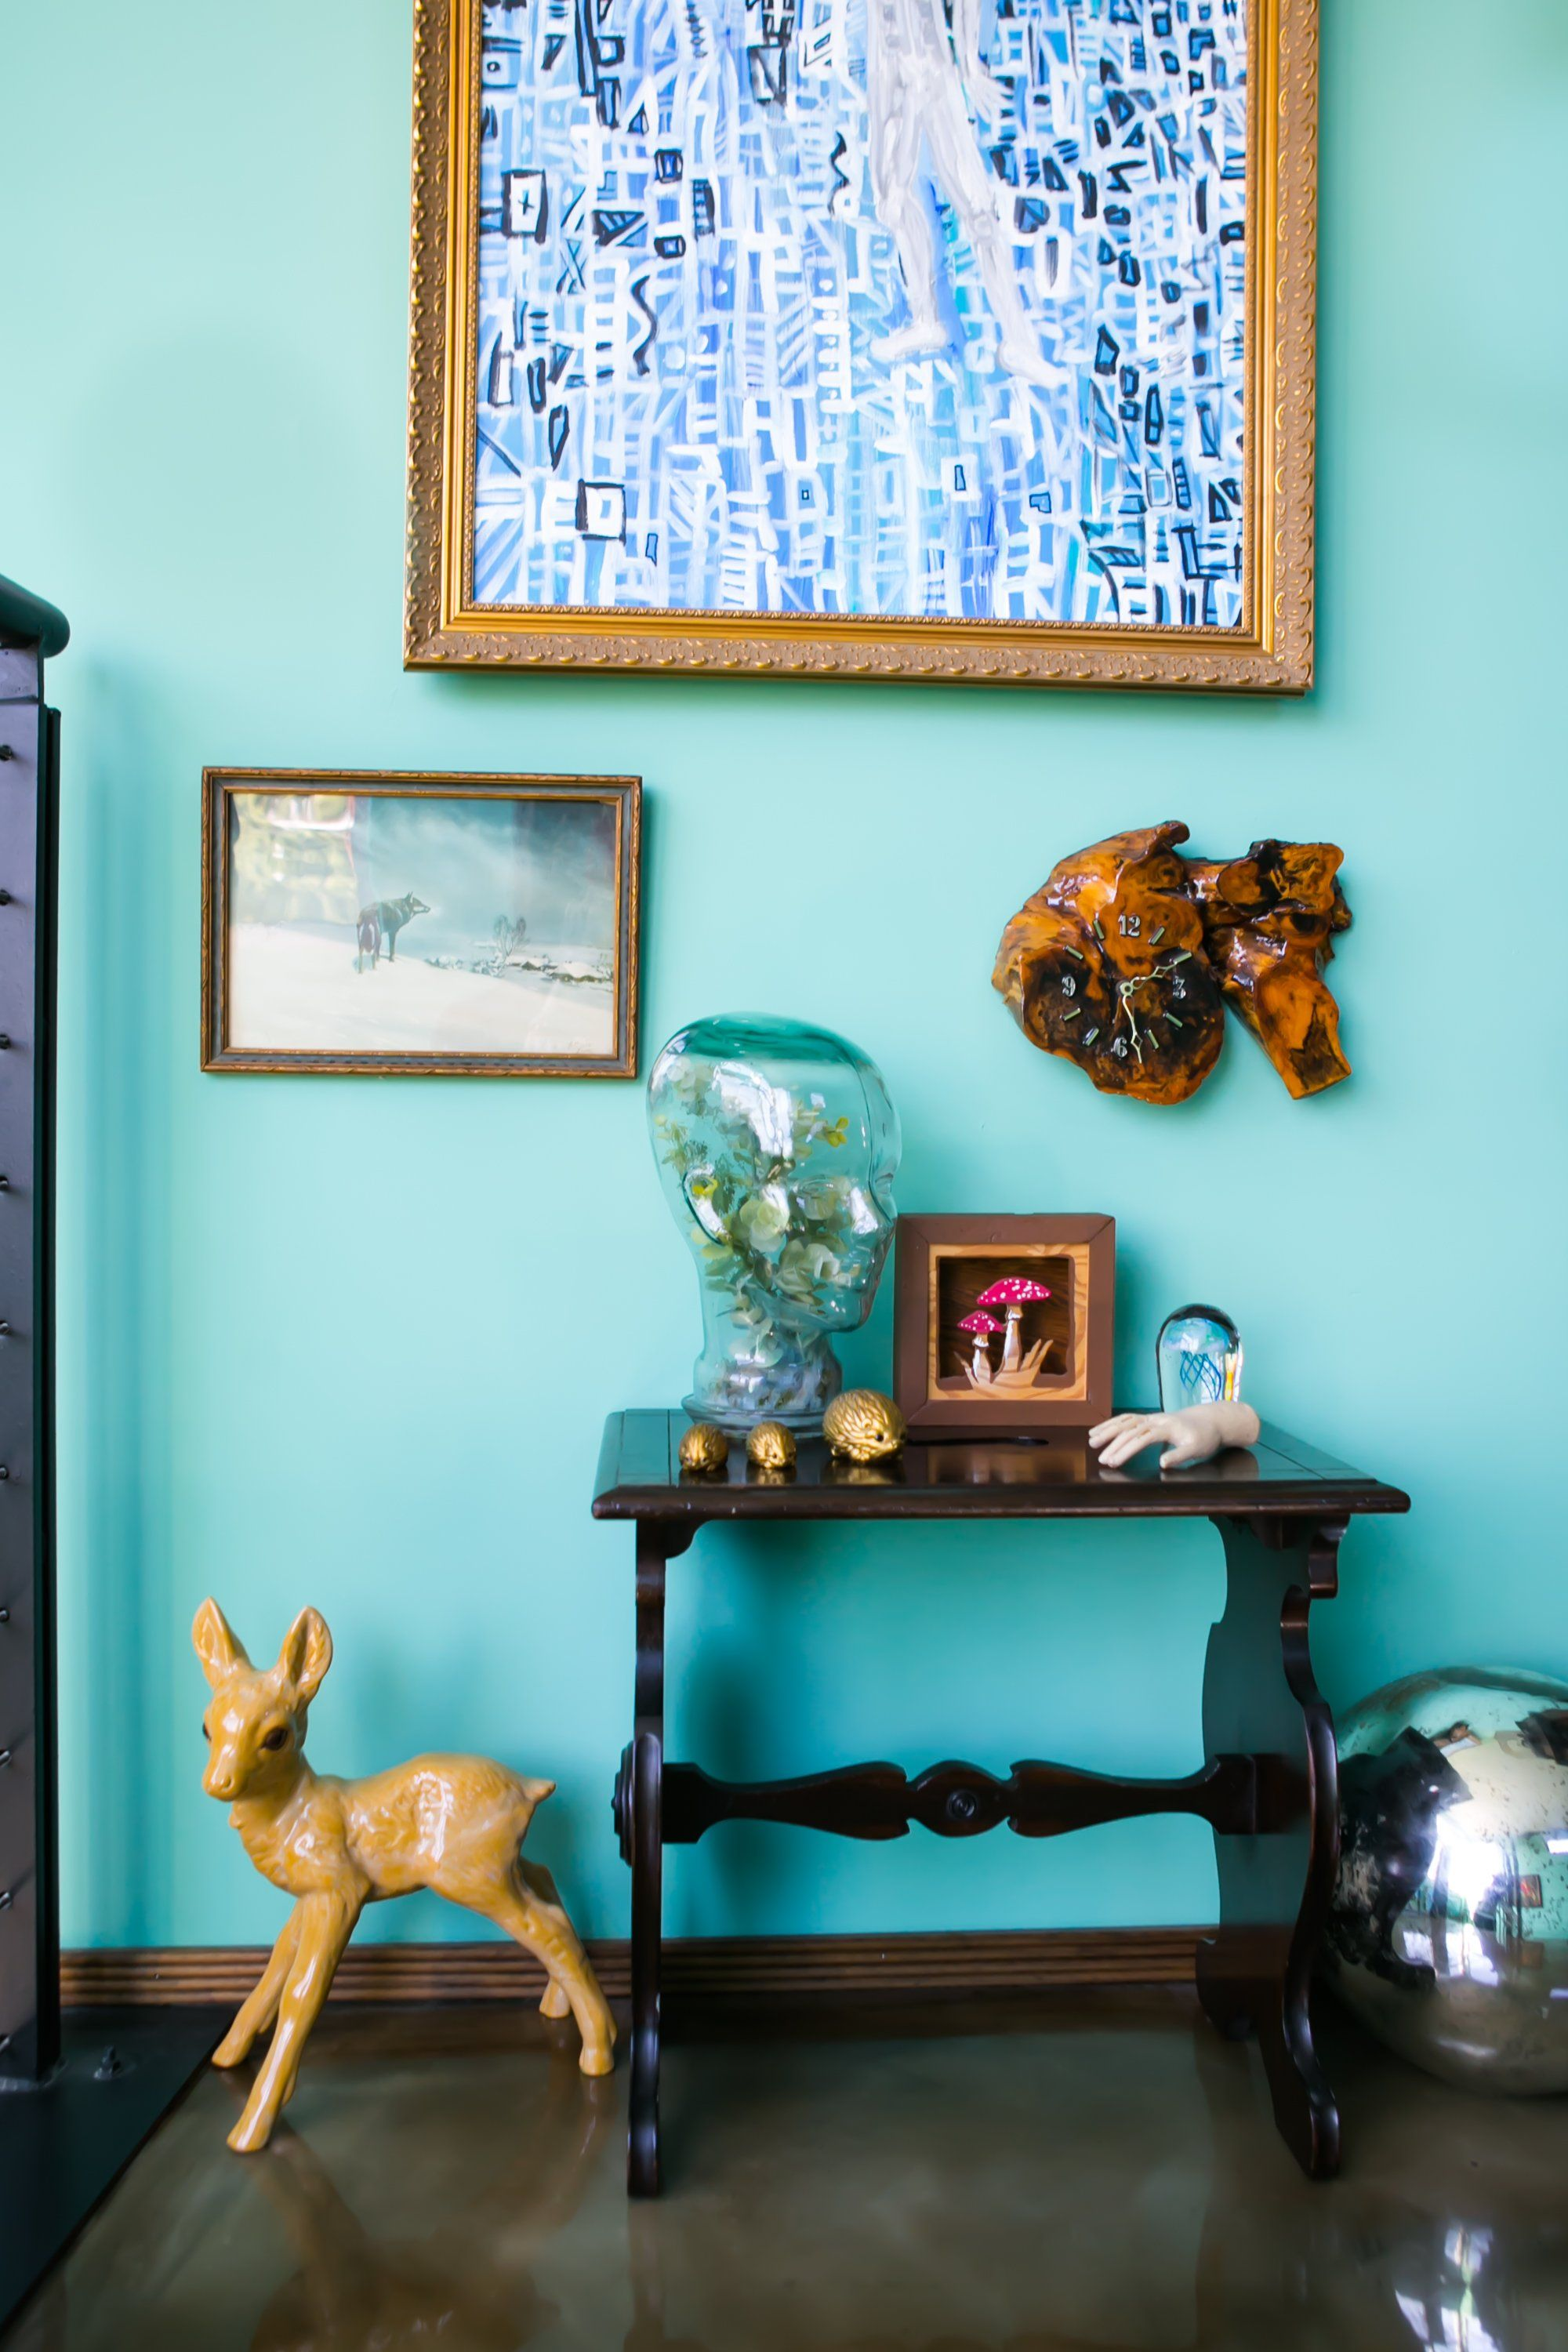 Paint colors that match this Apartment Therapy photo: SW 7700 Olde ...